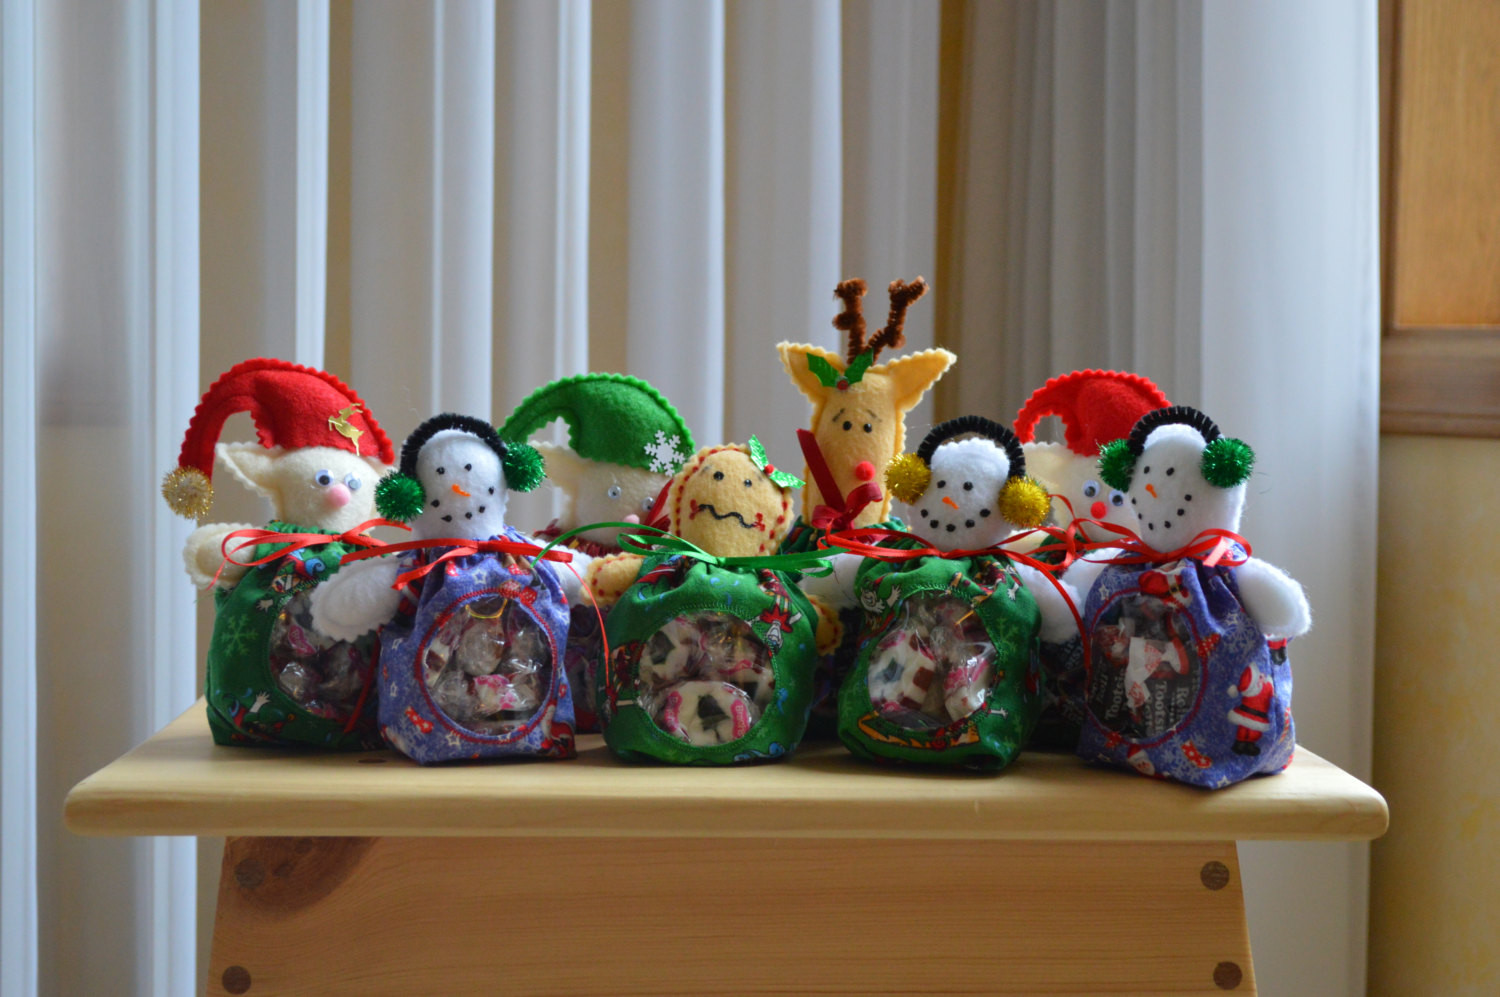 Christmas Candy Holders  Christmas Character Candy Holders by BarrelToRail on Etsy